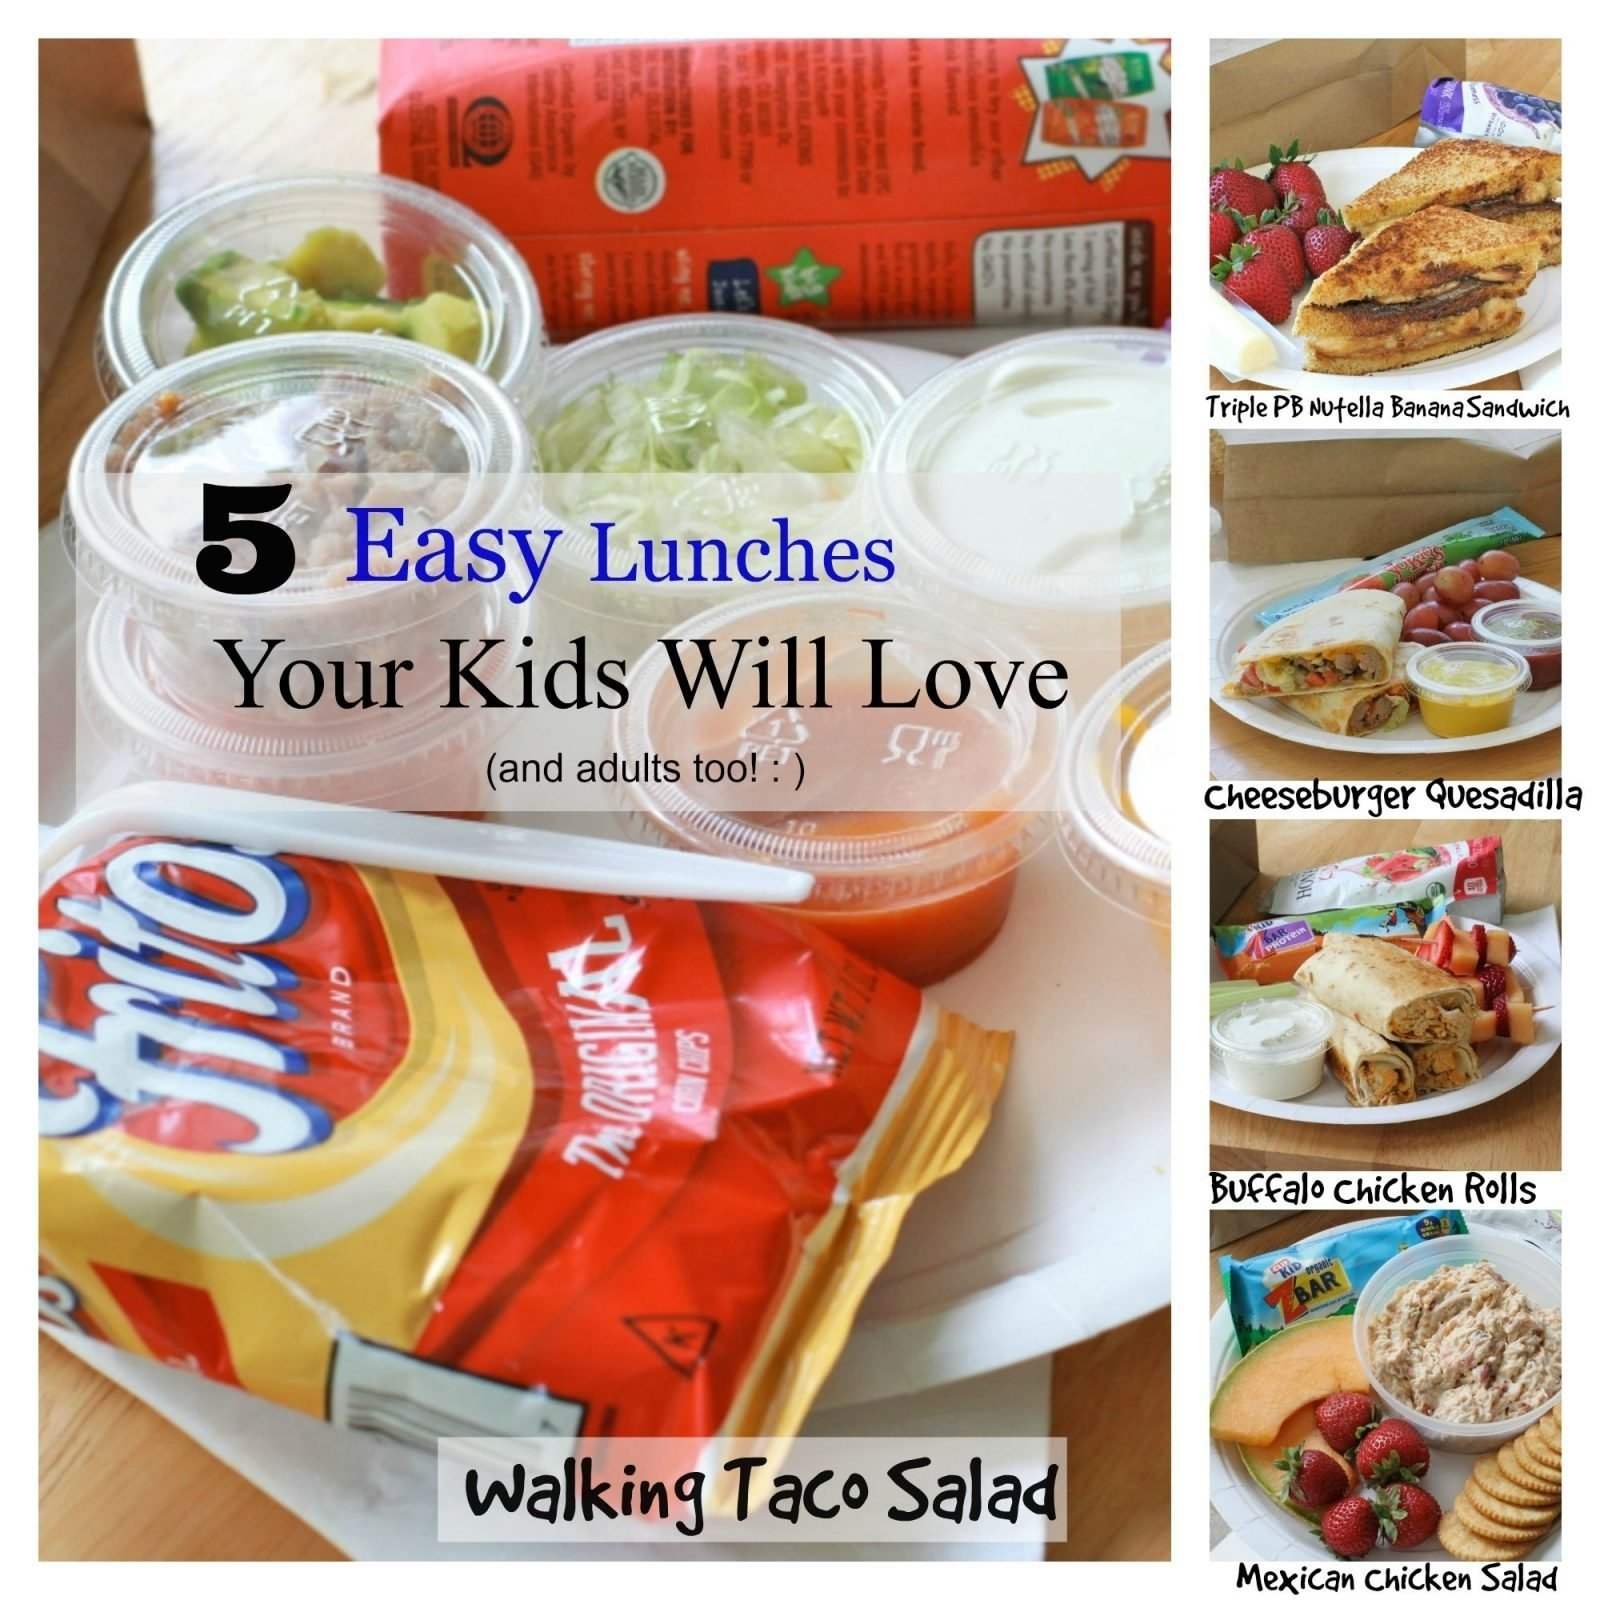 10 Amazing Good Lunch Ideas For Kids easy school lunch idea recipes divas can cook 5 2020